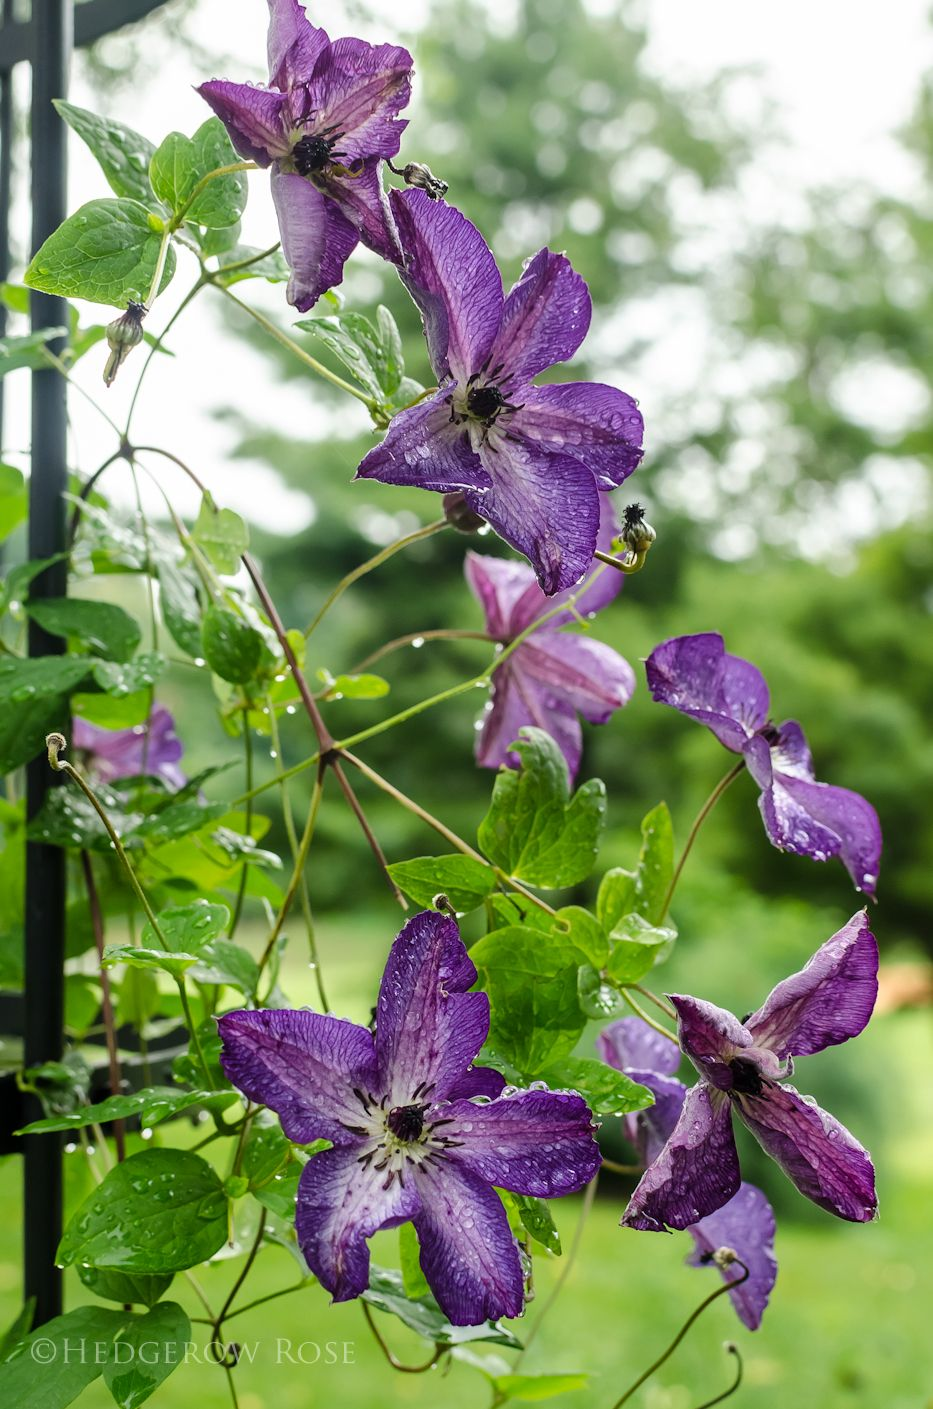 Clematis Venosa Violacea. Group 3, H 810', zone 3b 9a